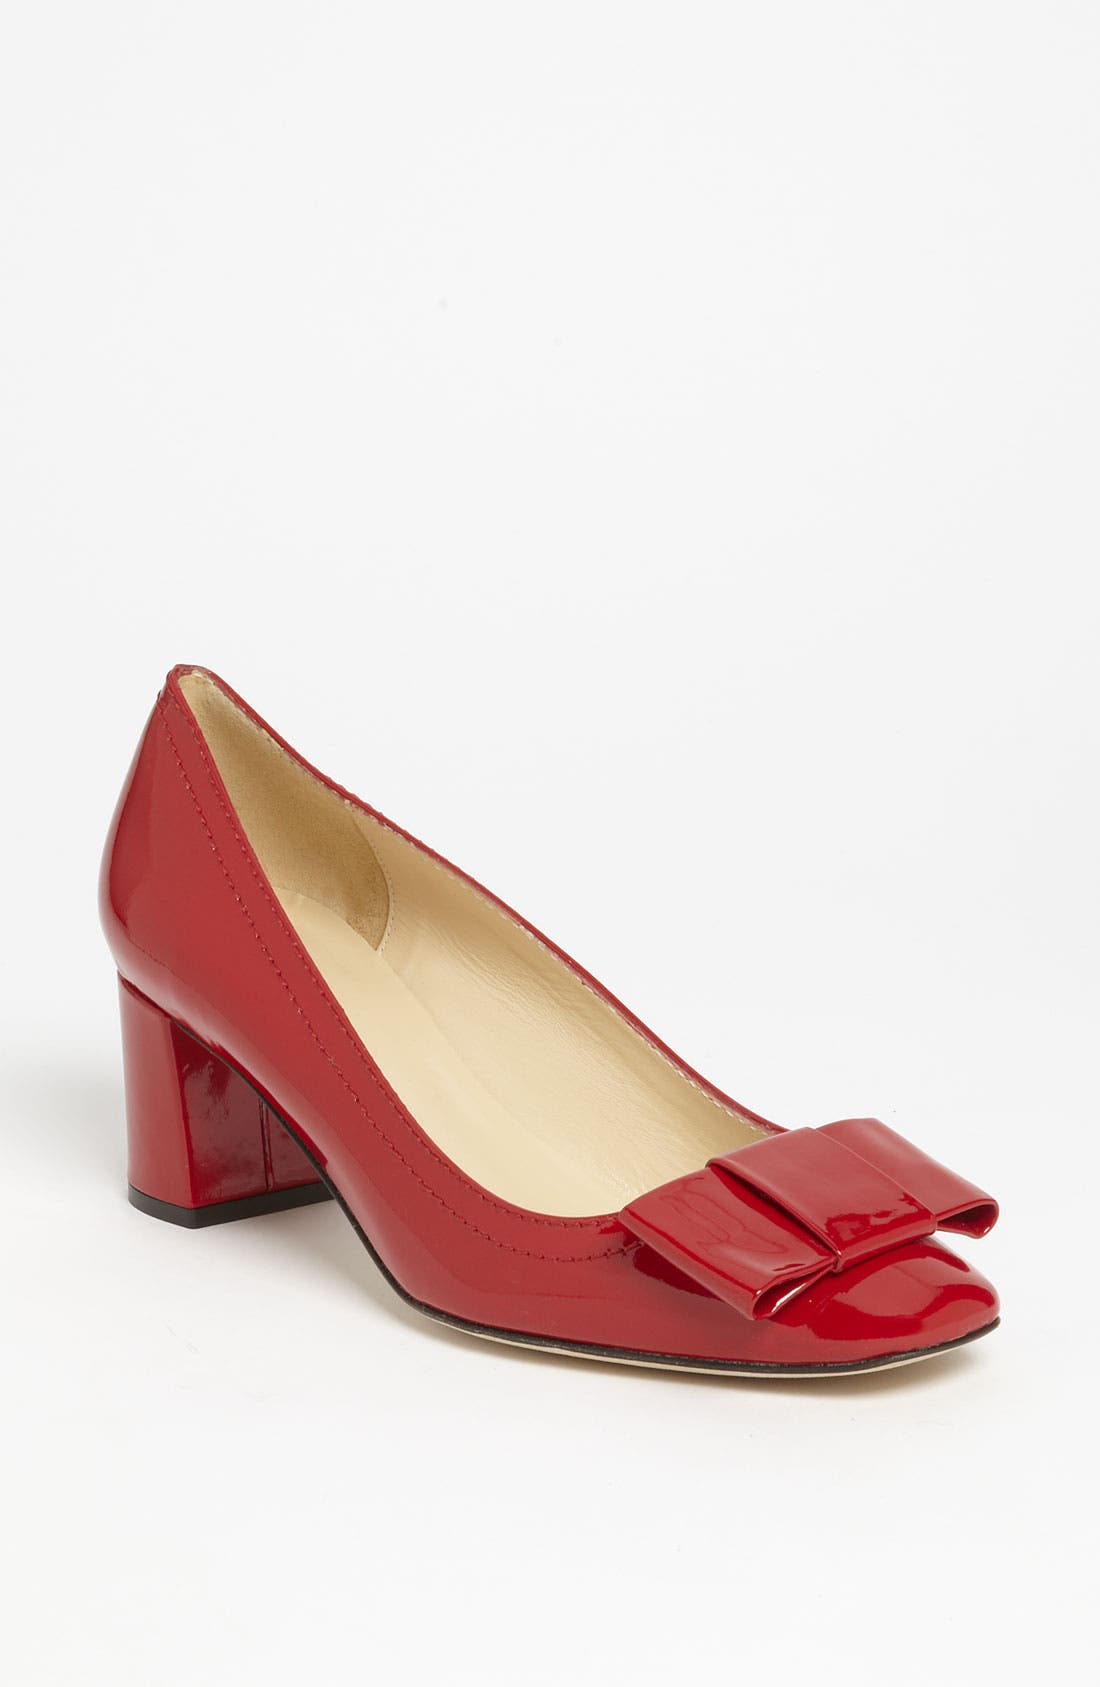 Main Image - kate spade new york 'dijon' pump